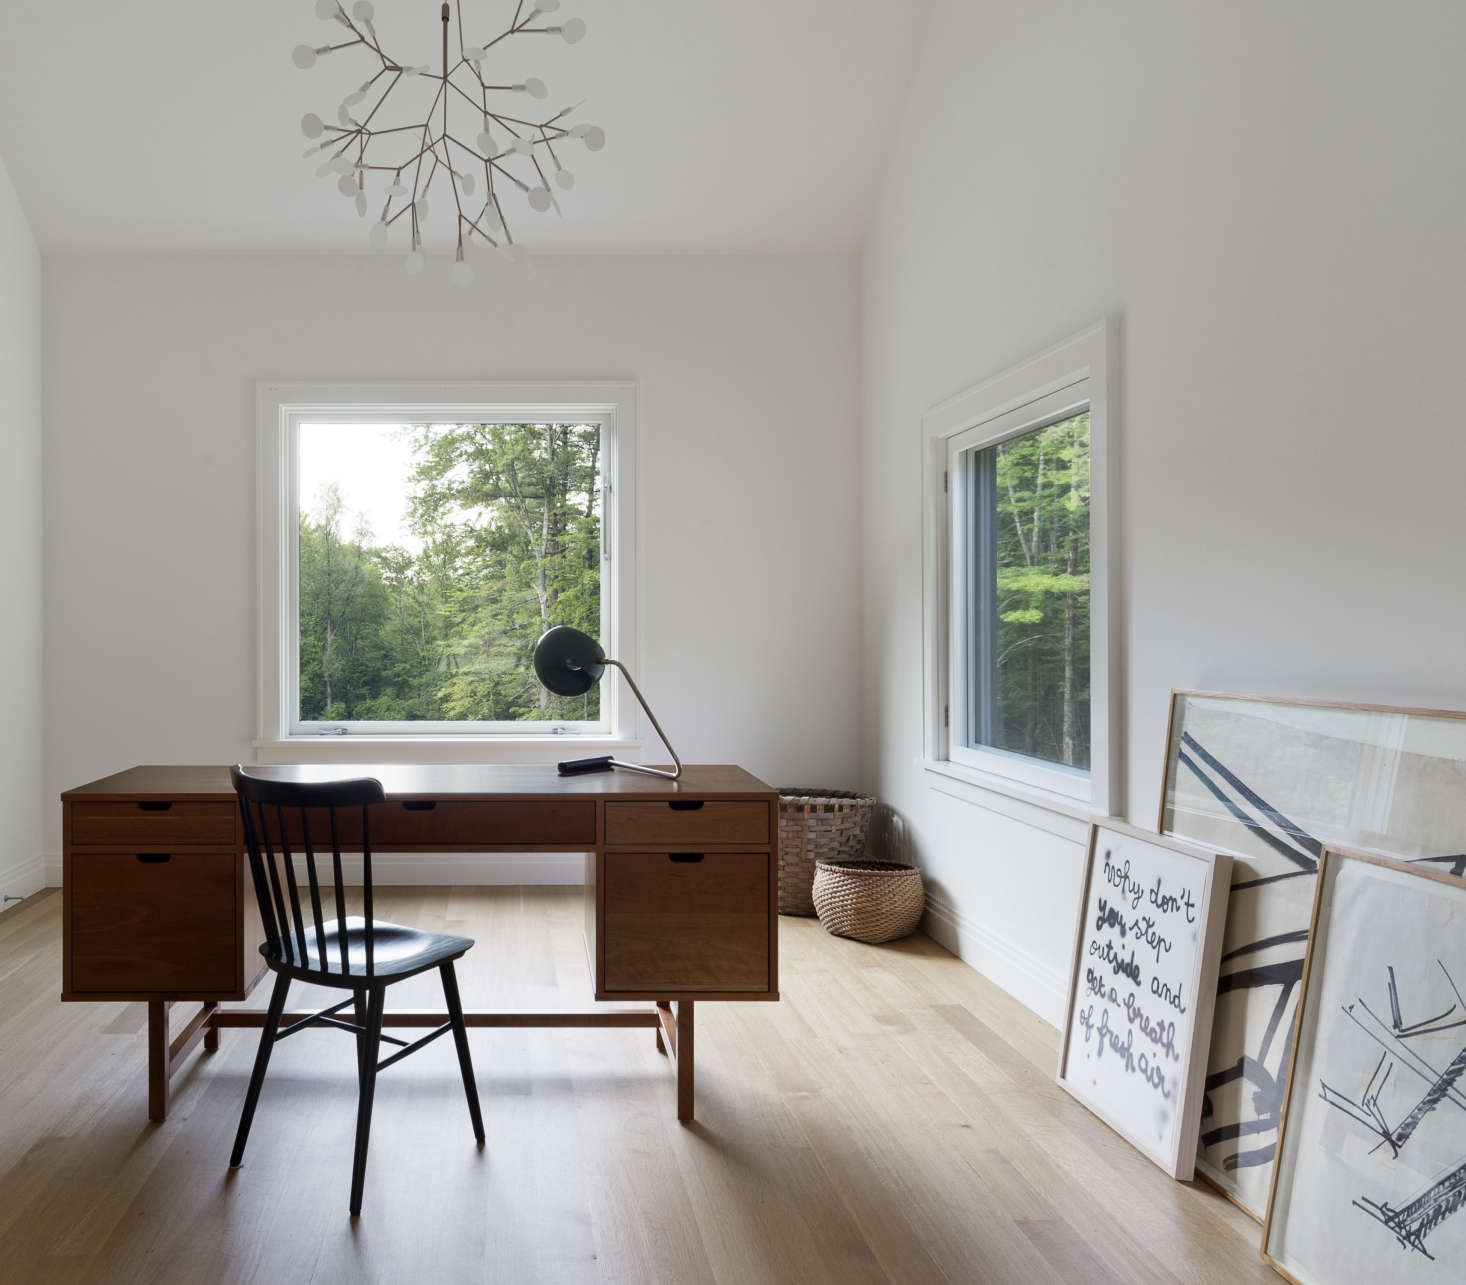 Home office with Moooi snowflake-like light at Undermountain, a barn-style house in the Berkshires by O'Neill Rose Architects